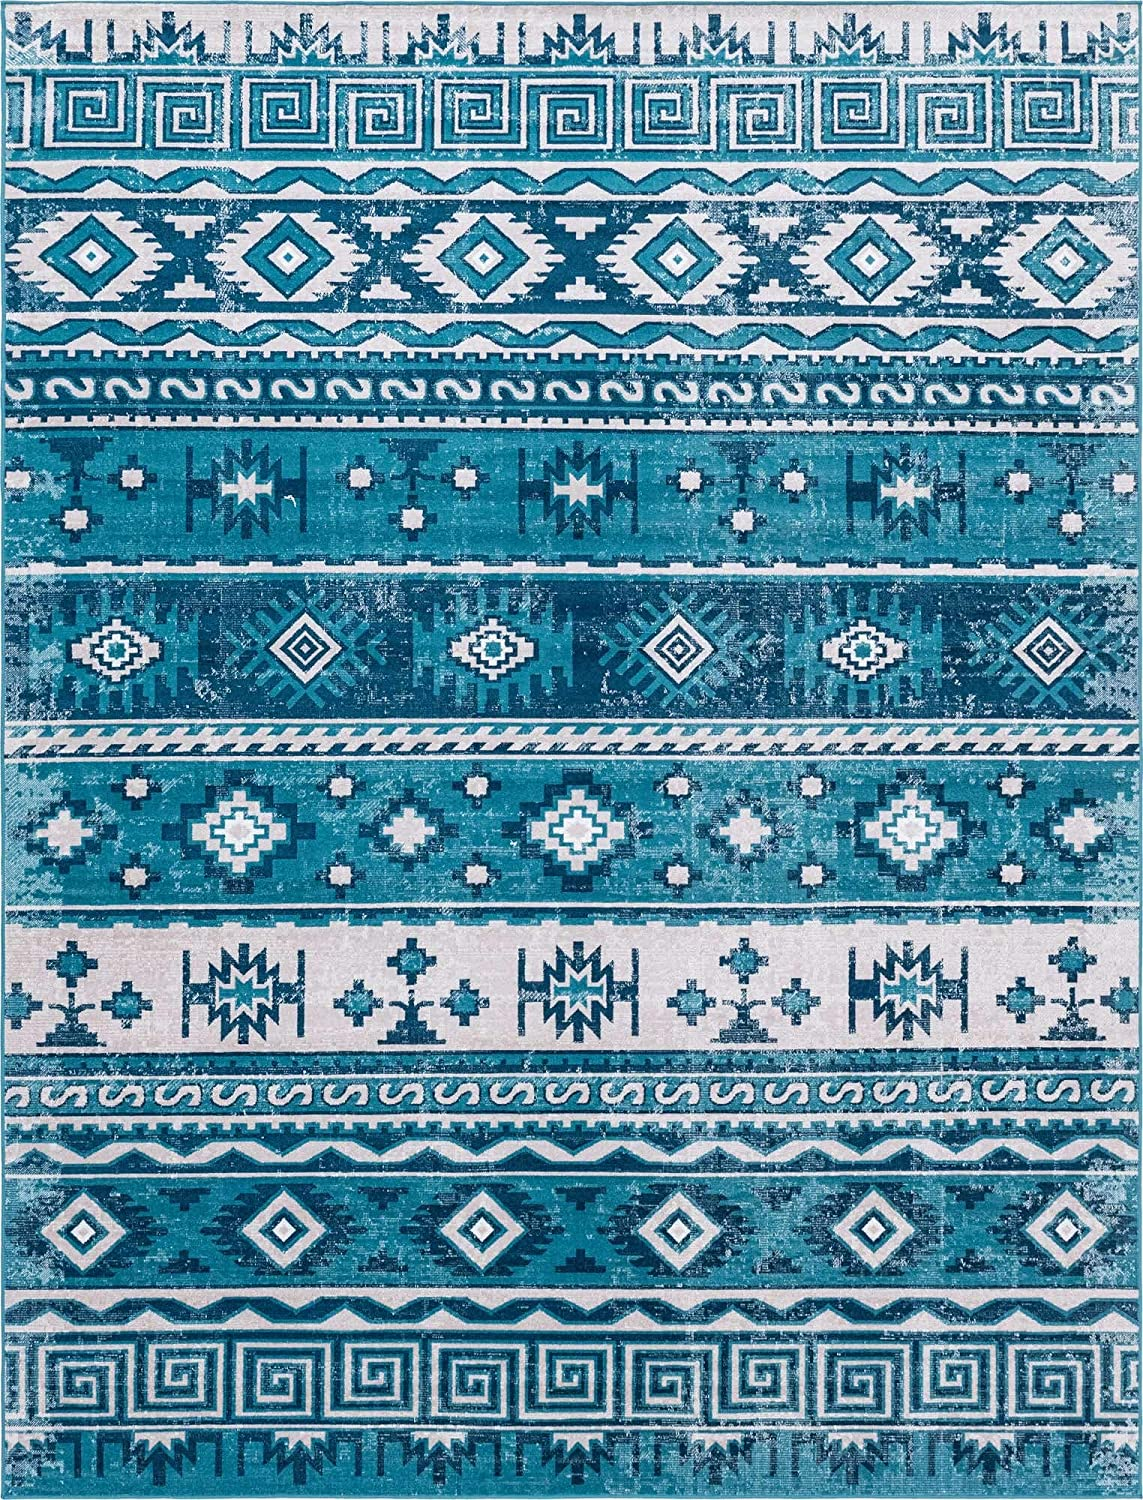 Rugs.com Lucerne Collection Area Rug – 4X6 Blue Low-Pile Rug Perfect for Entryways, Kitchens, Breakfast Nooks, Accent Pieces